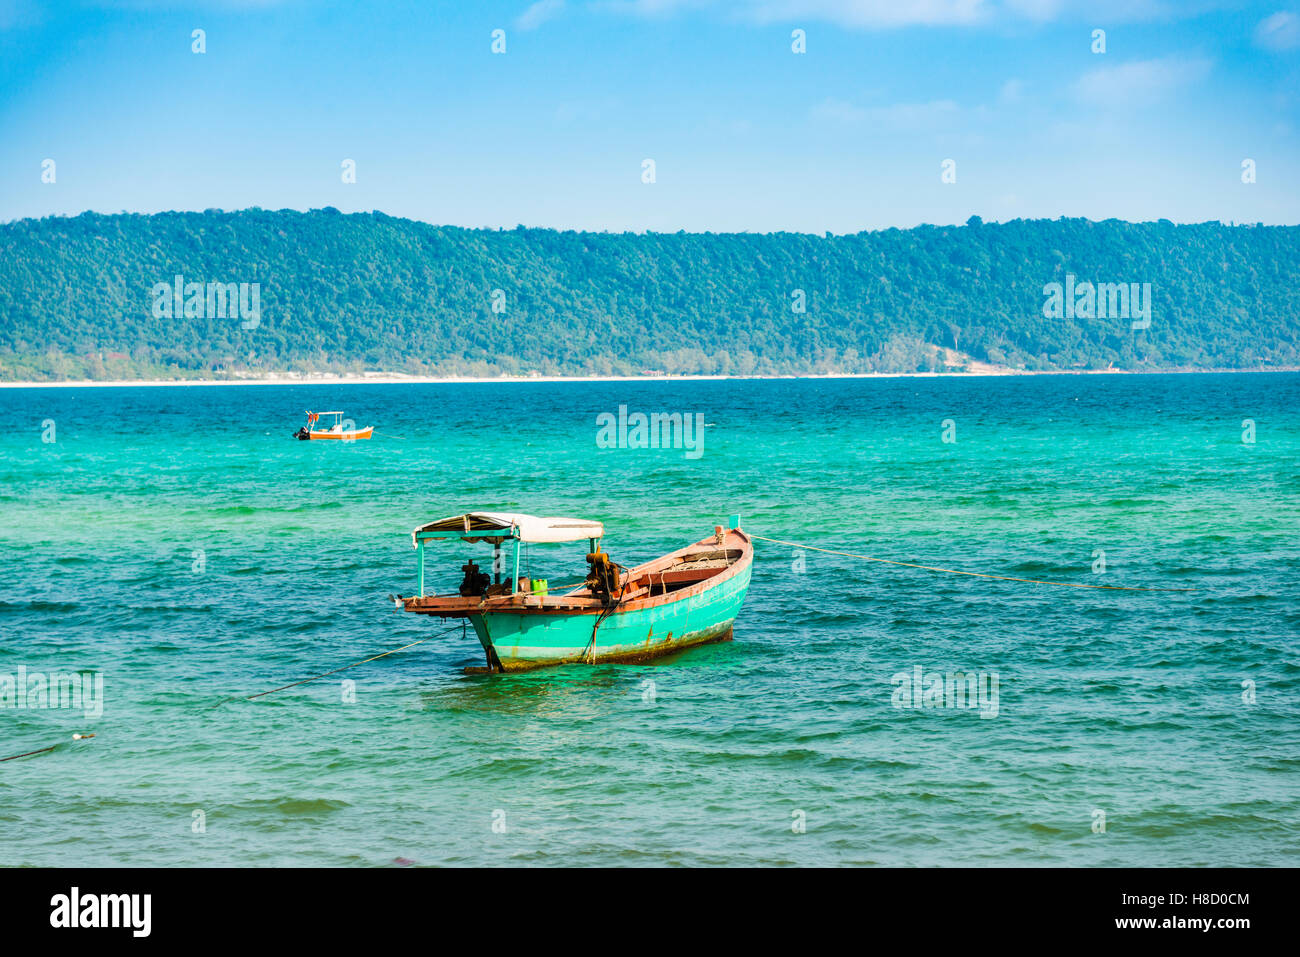 Traditional long-tail boat in turquoise sea, Long Beach, Sok San Village, Koh Rong Island, Krong Preah Sihanouk, Stock Photo